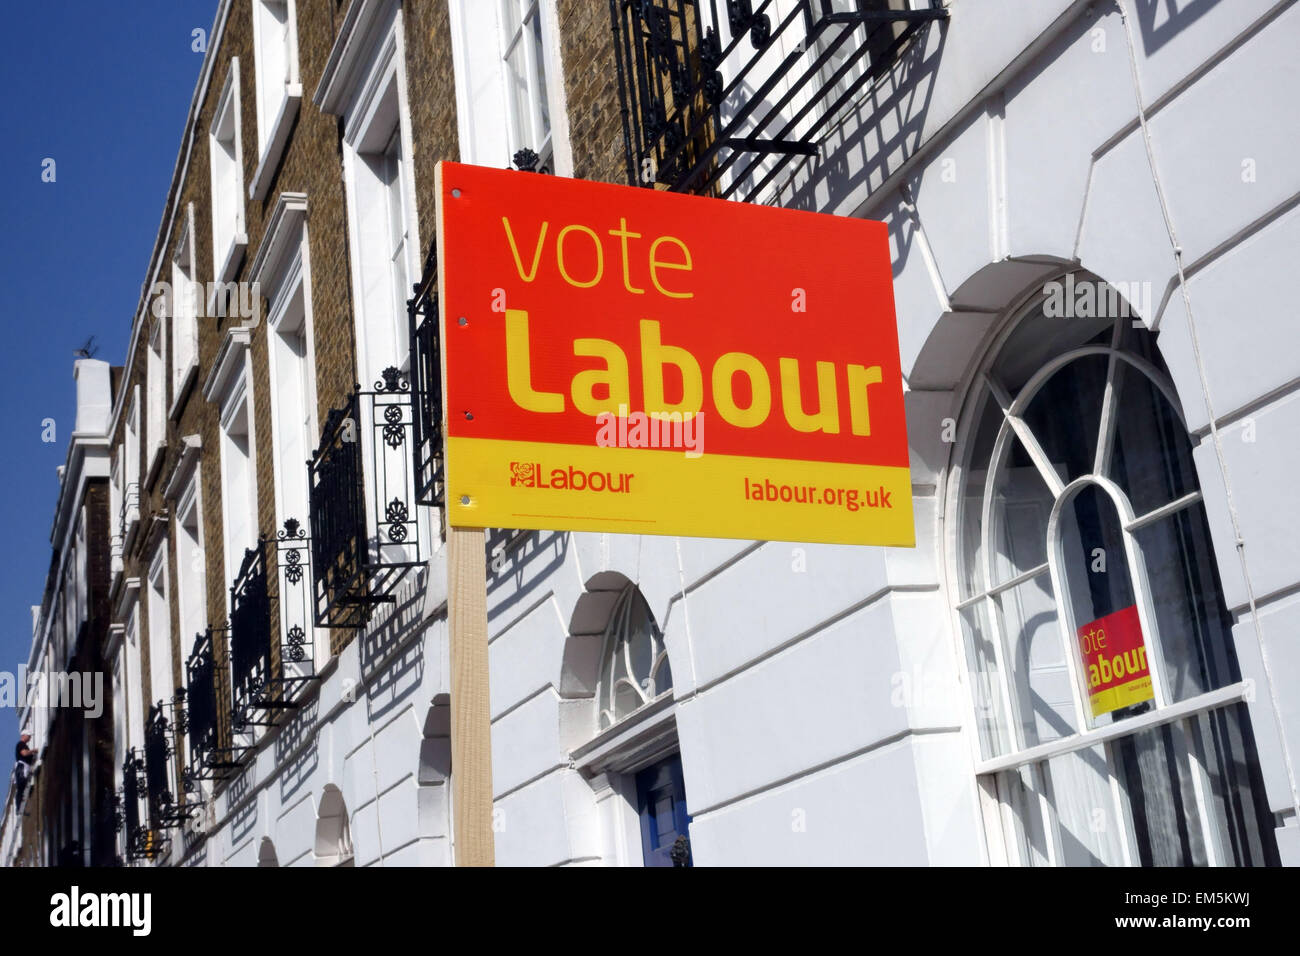 Labour Party sign outside Georgian terraced house in Islington square, London - Stock Image